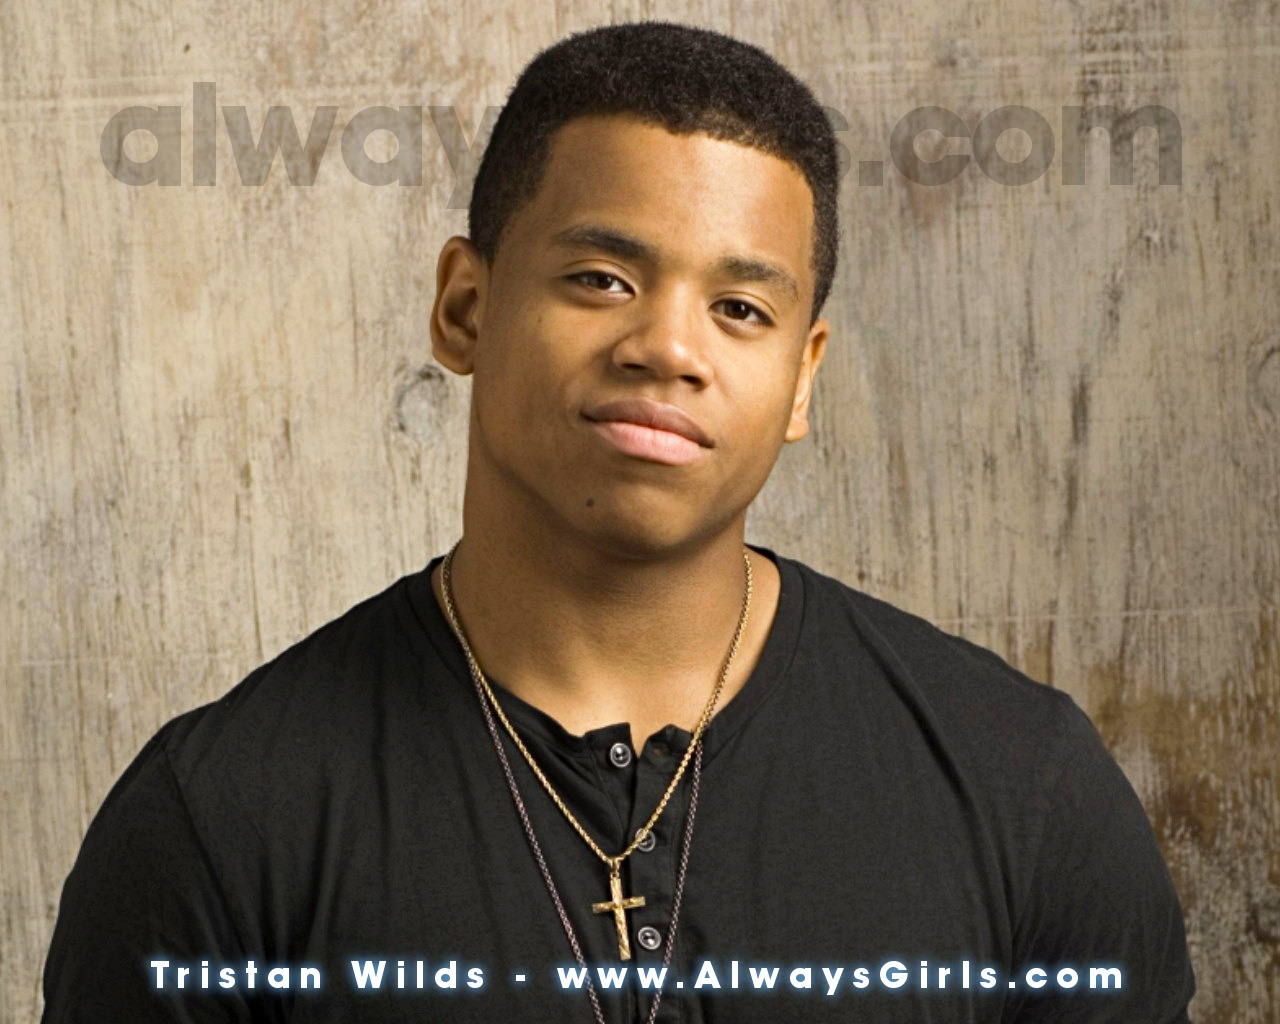 Tristan Wilds T Wallpapers tristan wilds